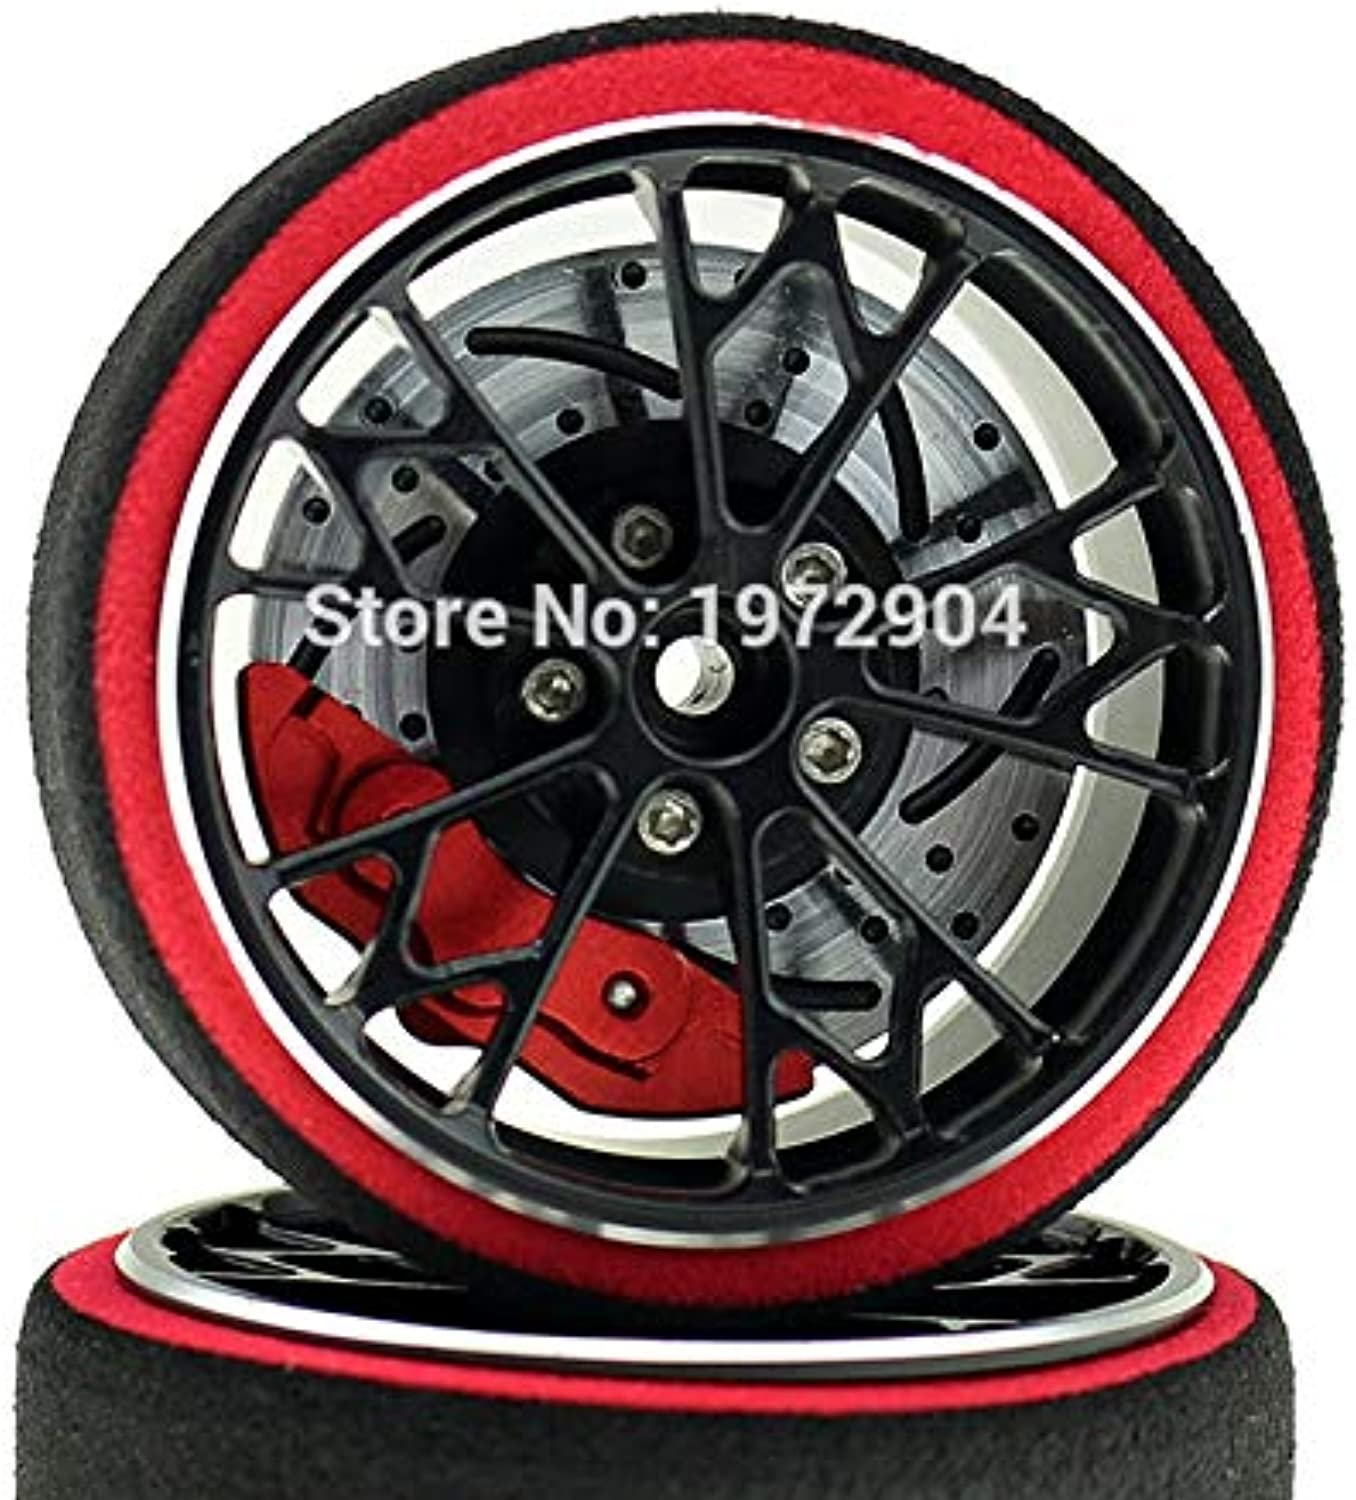 Laliva Upgrated RS Remote Control Controller Aluminum Alloy Hand Wheel SANWA M11 X MT4 4 S MXV RC Accessories  (color  Red)